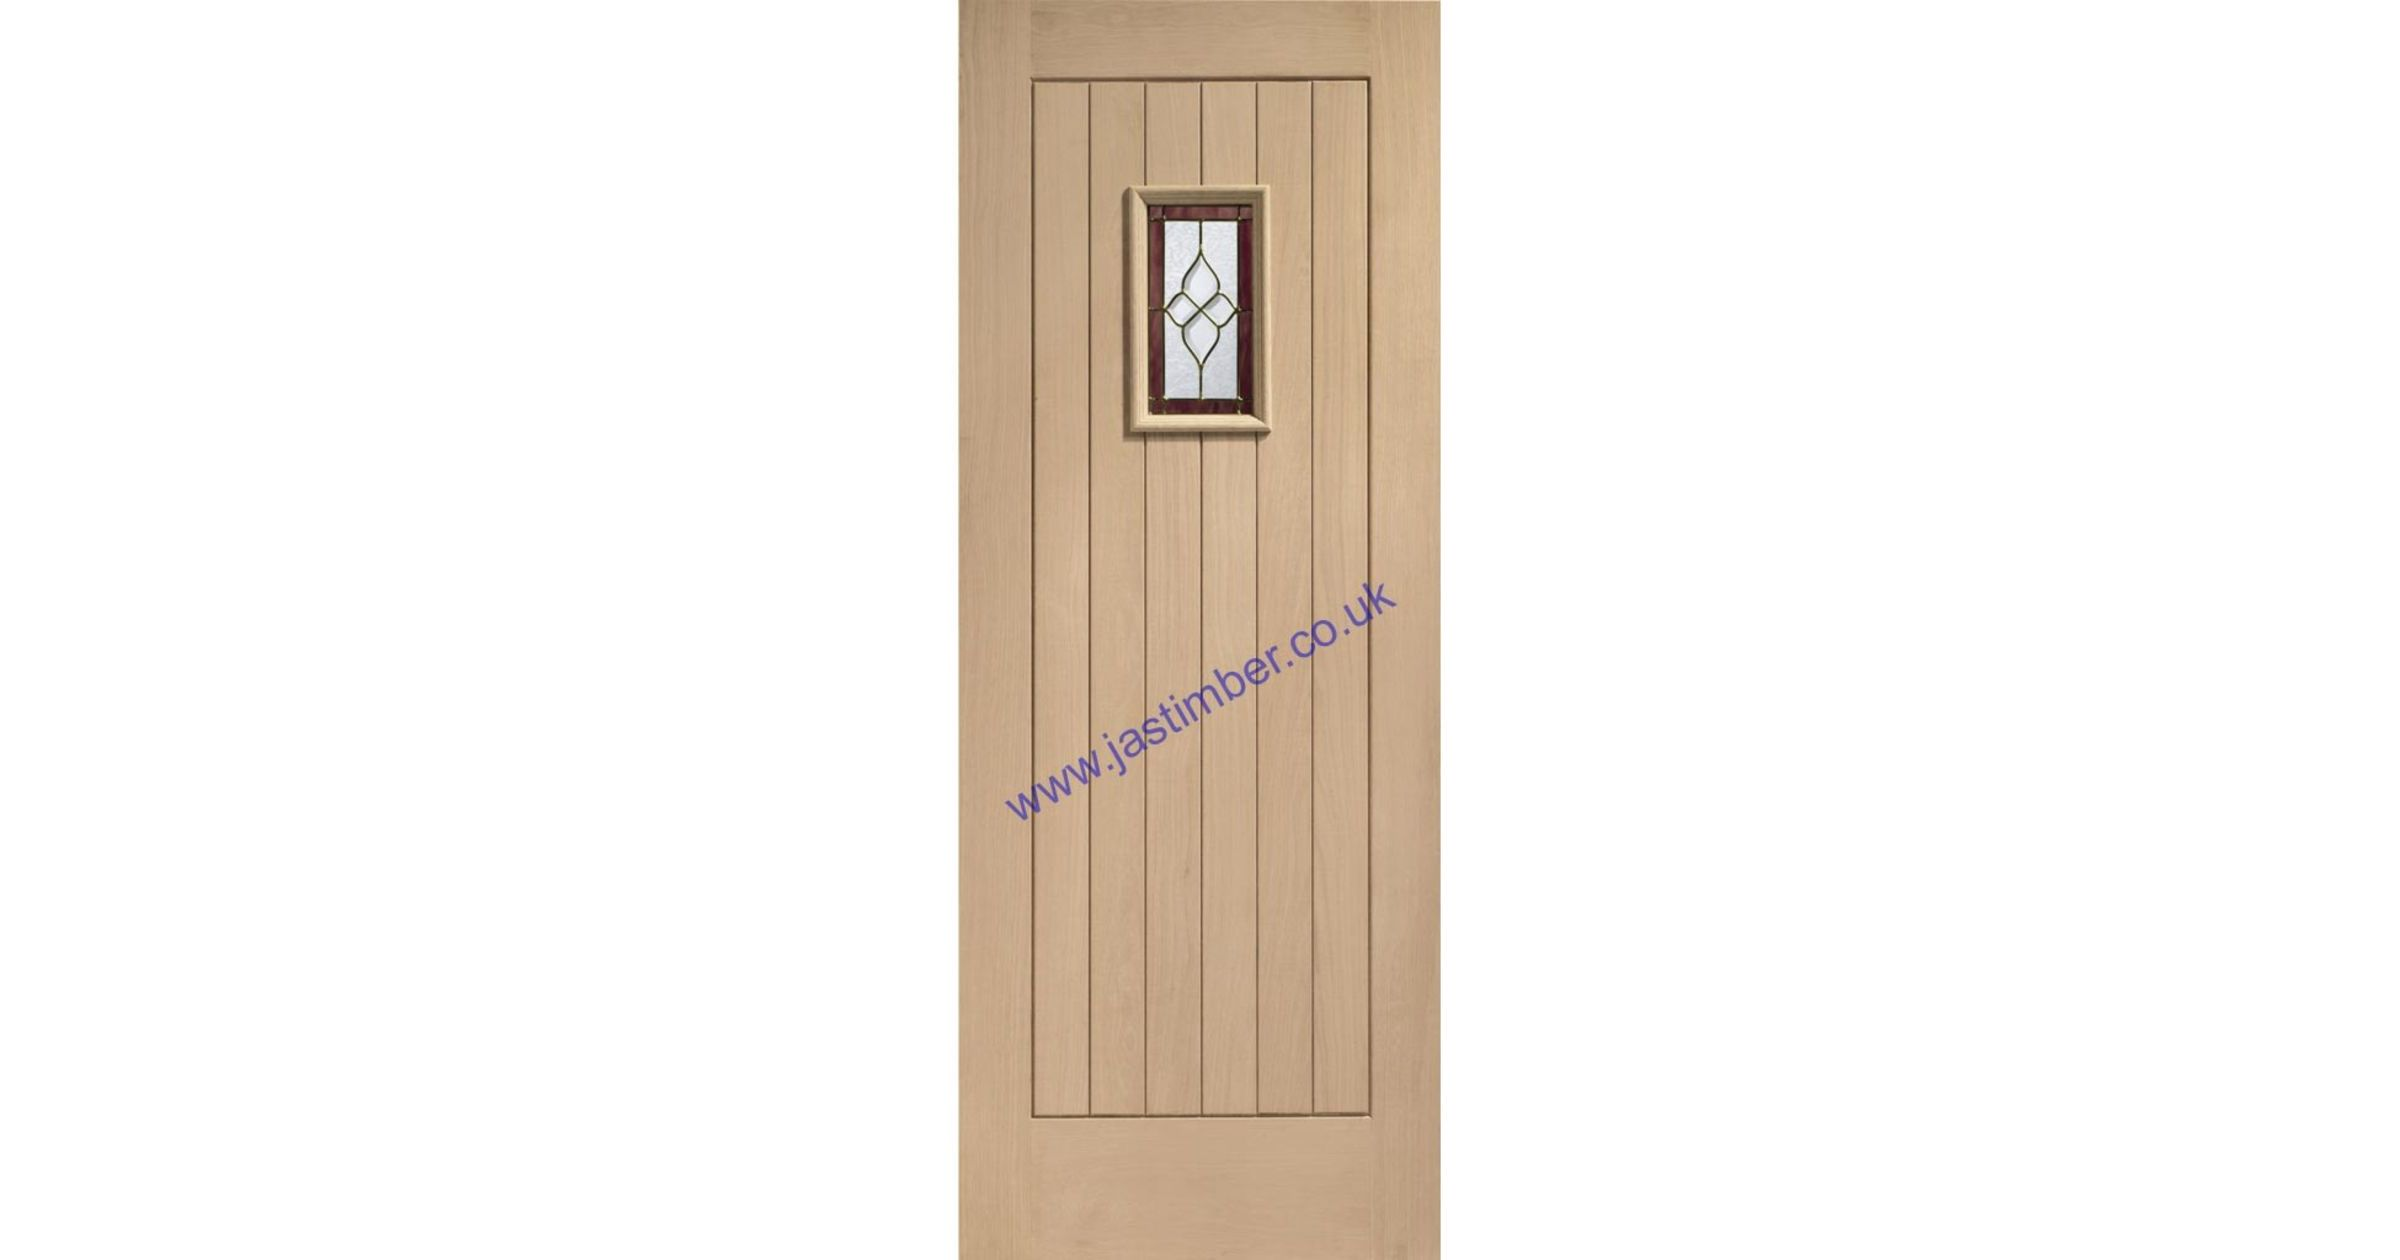 Chancery Onyx Brass-Came Triple-Glazed M&T Oak Door - XL